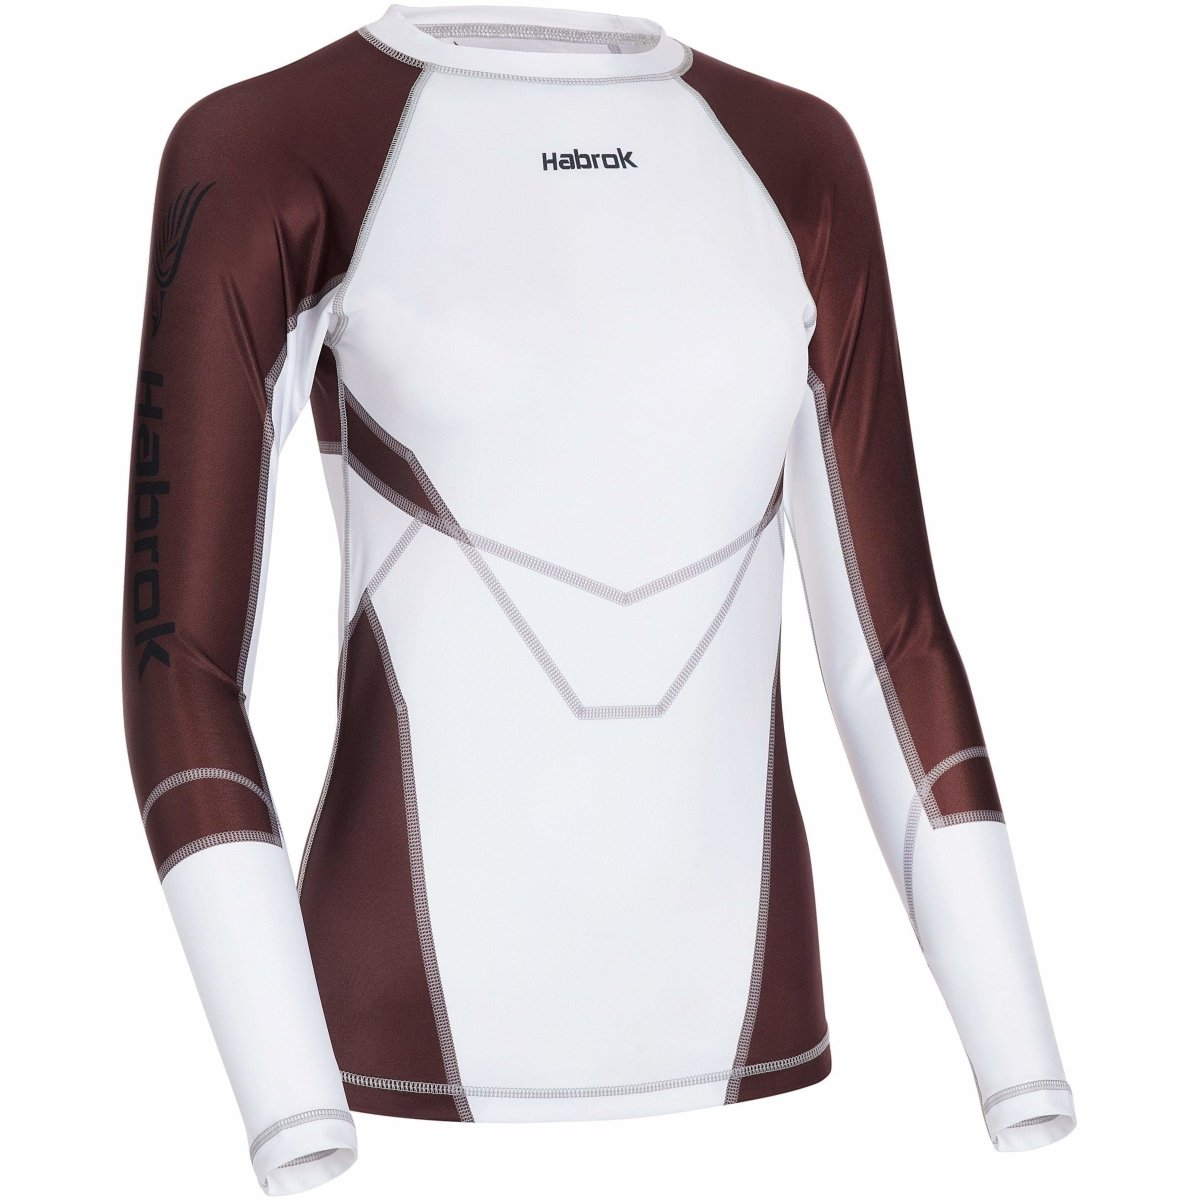 Habrok Rash Guard XS / BROWN Transform 2.5 |Rash Guard Women | Full Sleeve